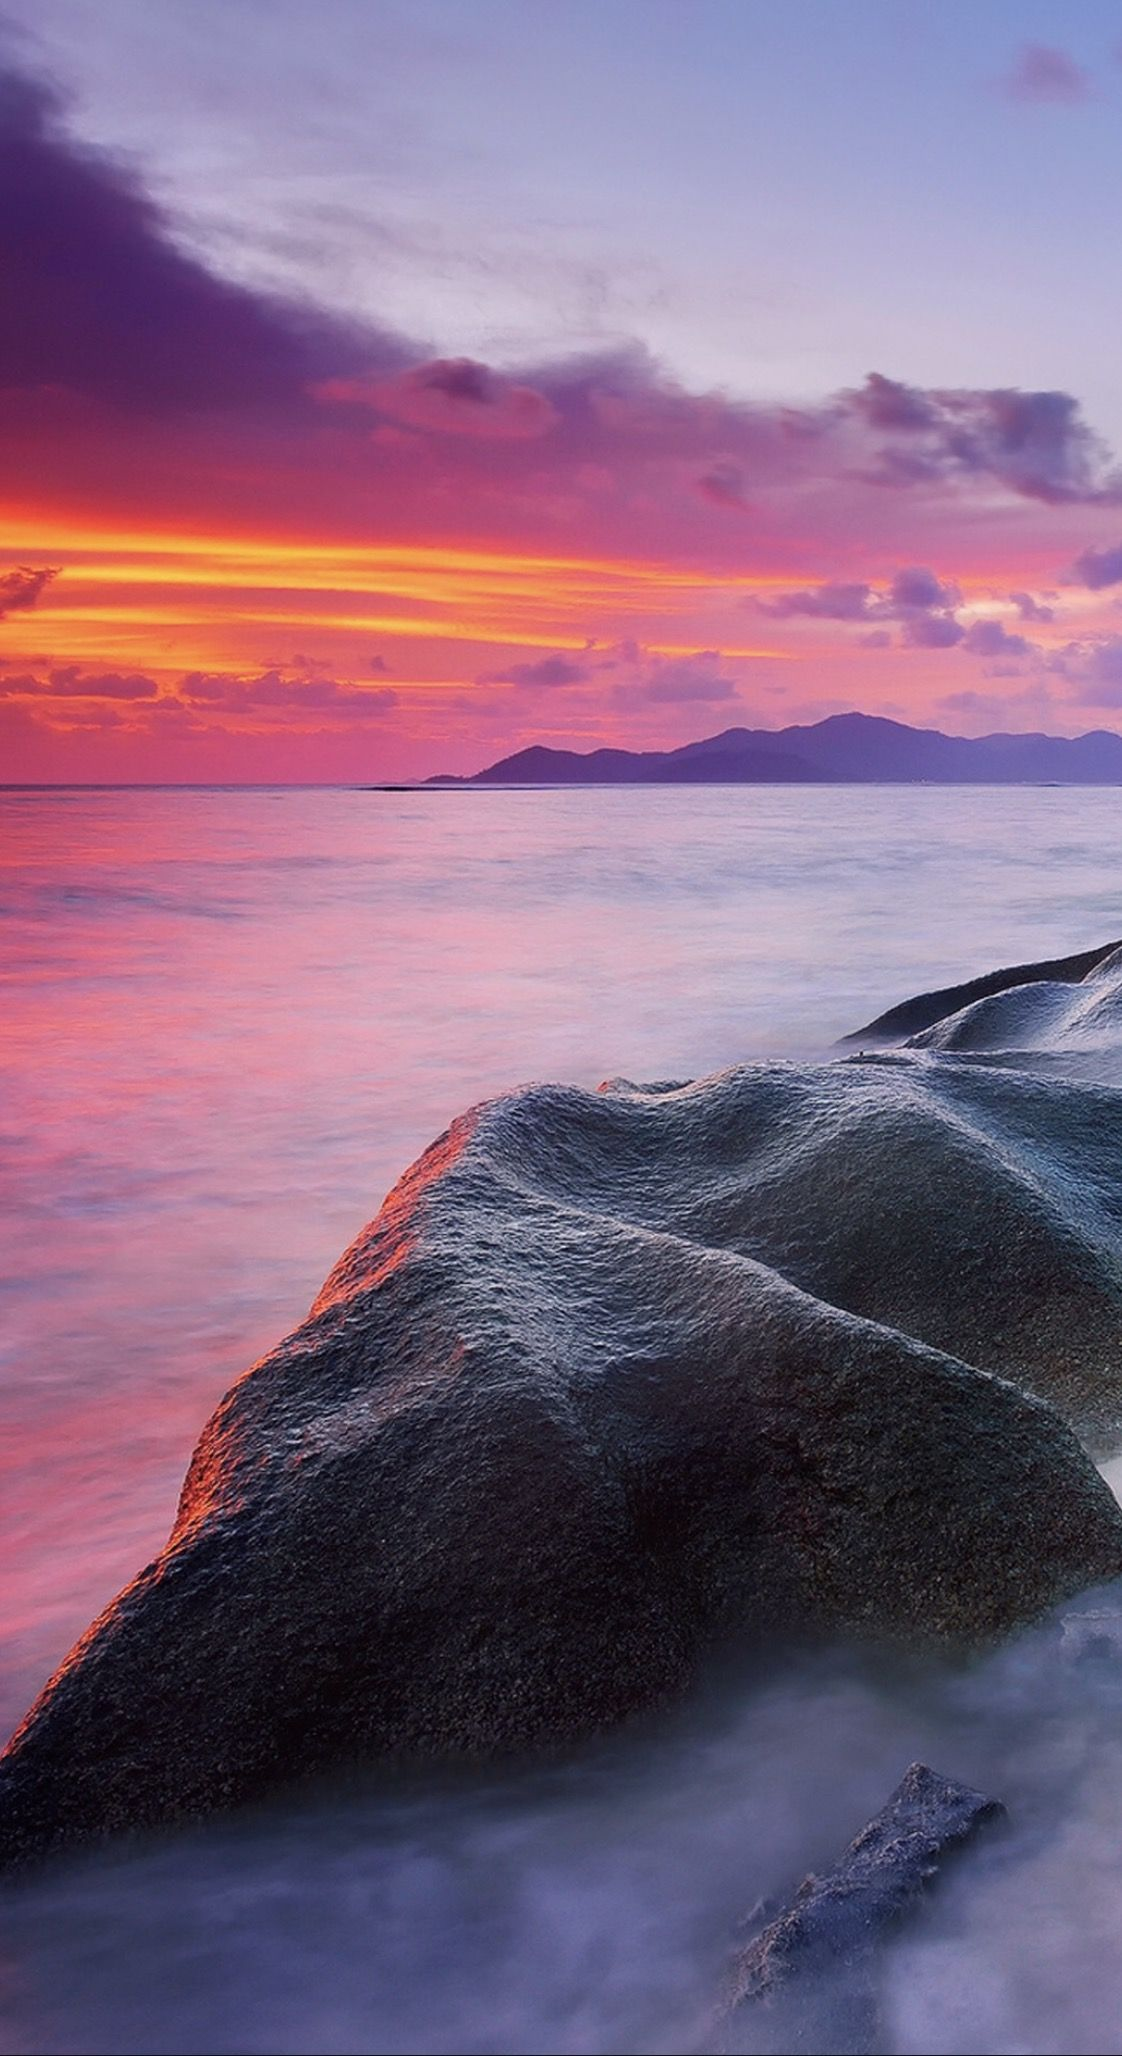 Pin by Chloe Gallagher on Travel Beach sunset wallpaper